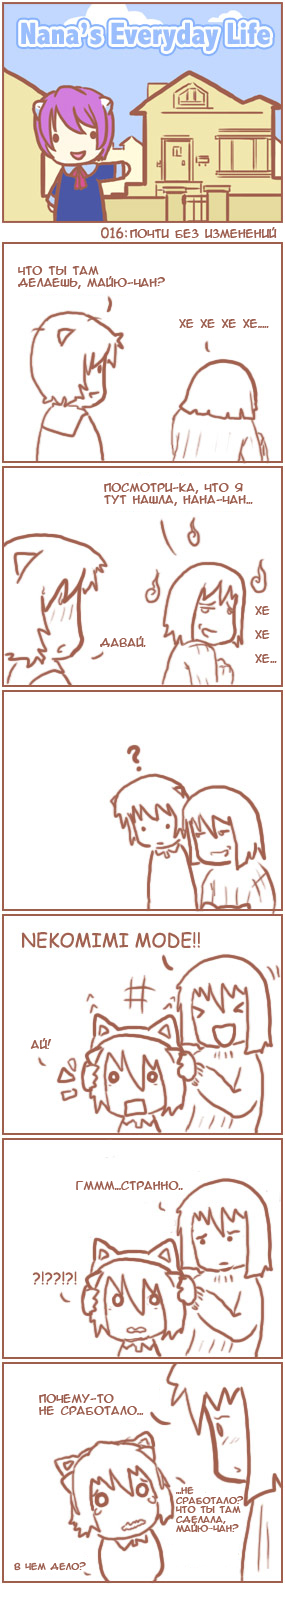 [Nana's Everyday Life - strip 16]